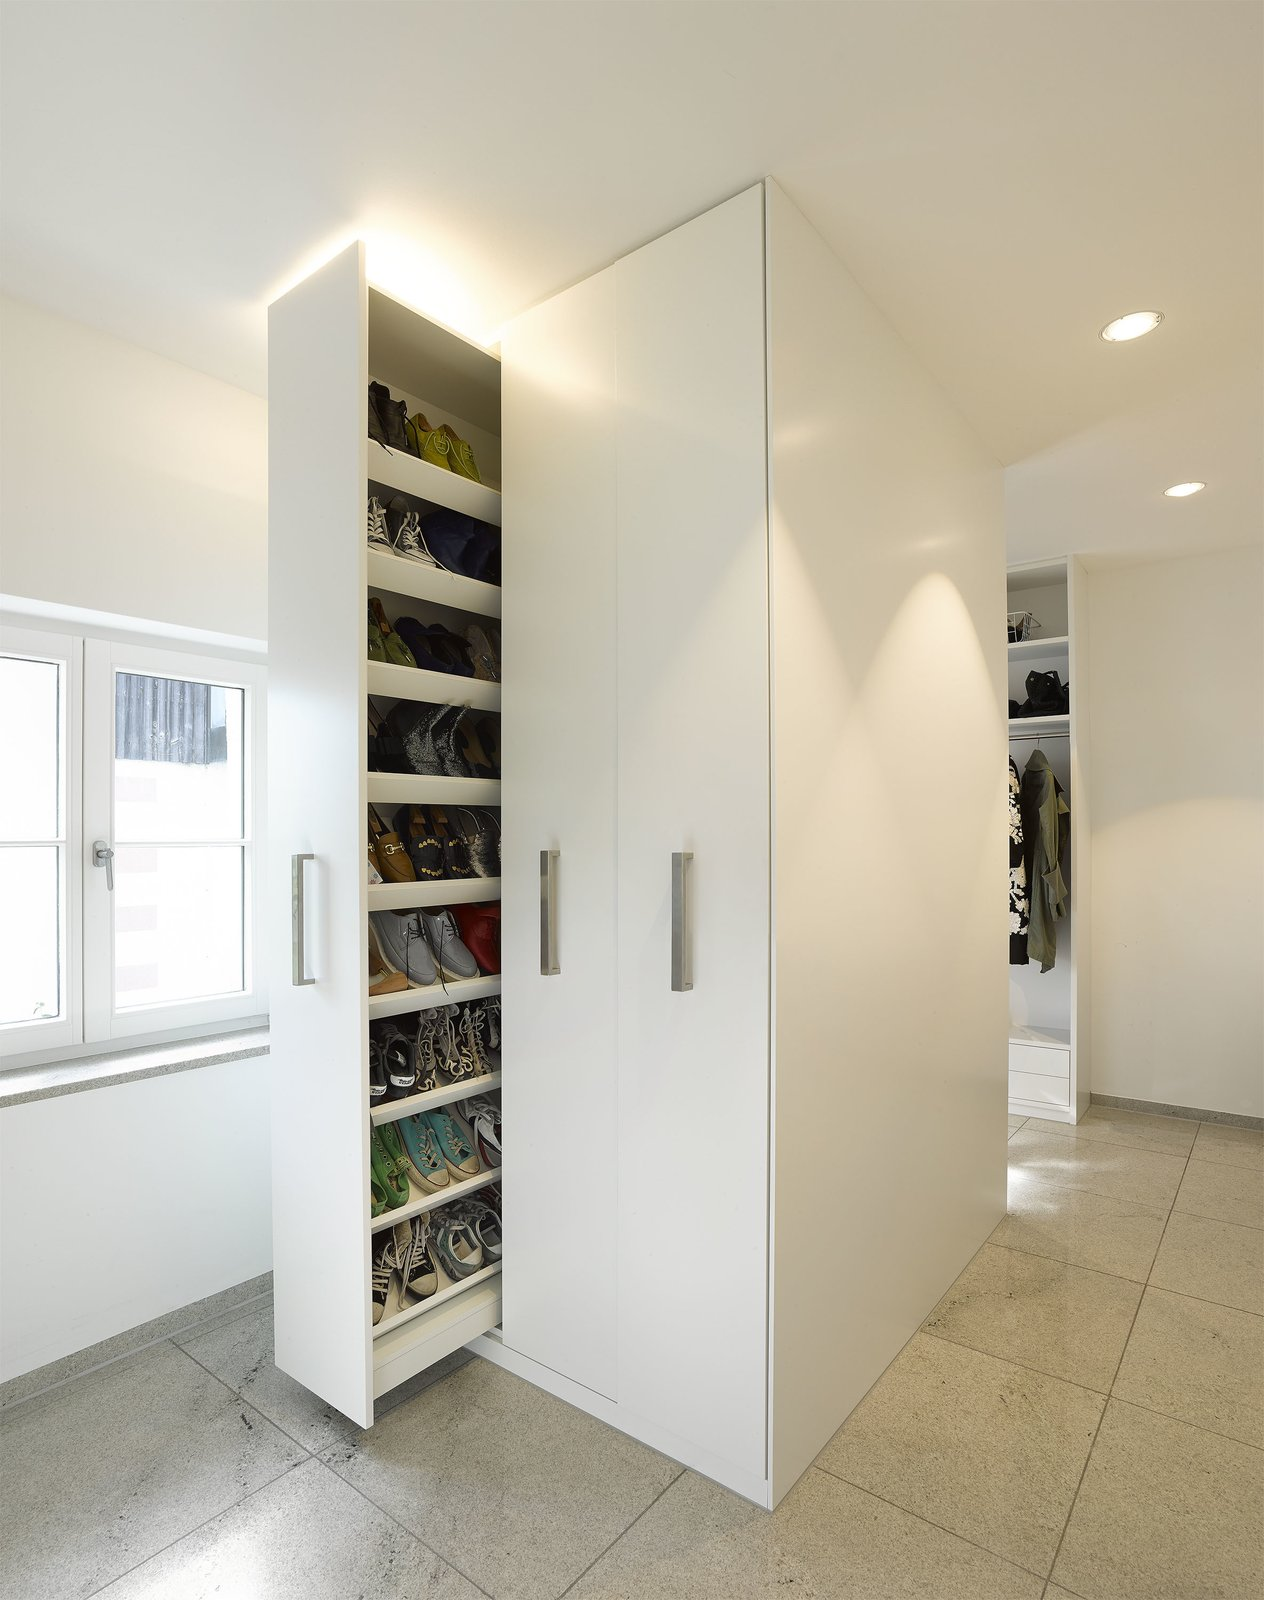 Though the home is expansive, the team made certain to waste as little space as possible. Clever moments of storage, like this sliding shoe closet, abound.  Renovations from An Uninspired Home in Germany Gets a Bright, Eco-Friendly Update